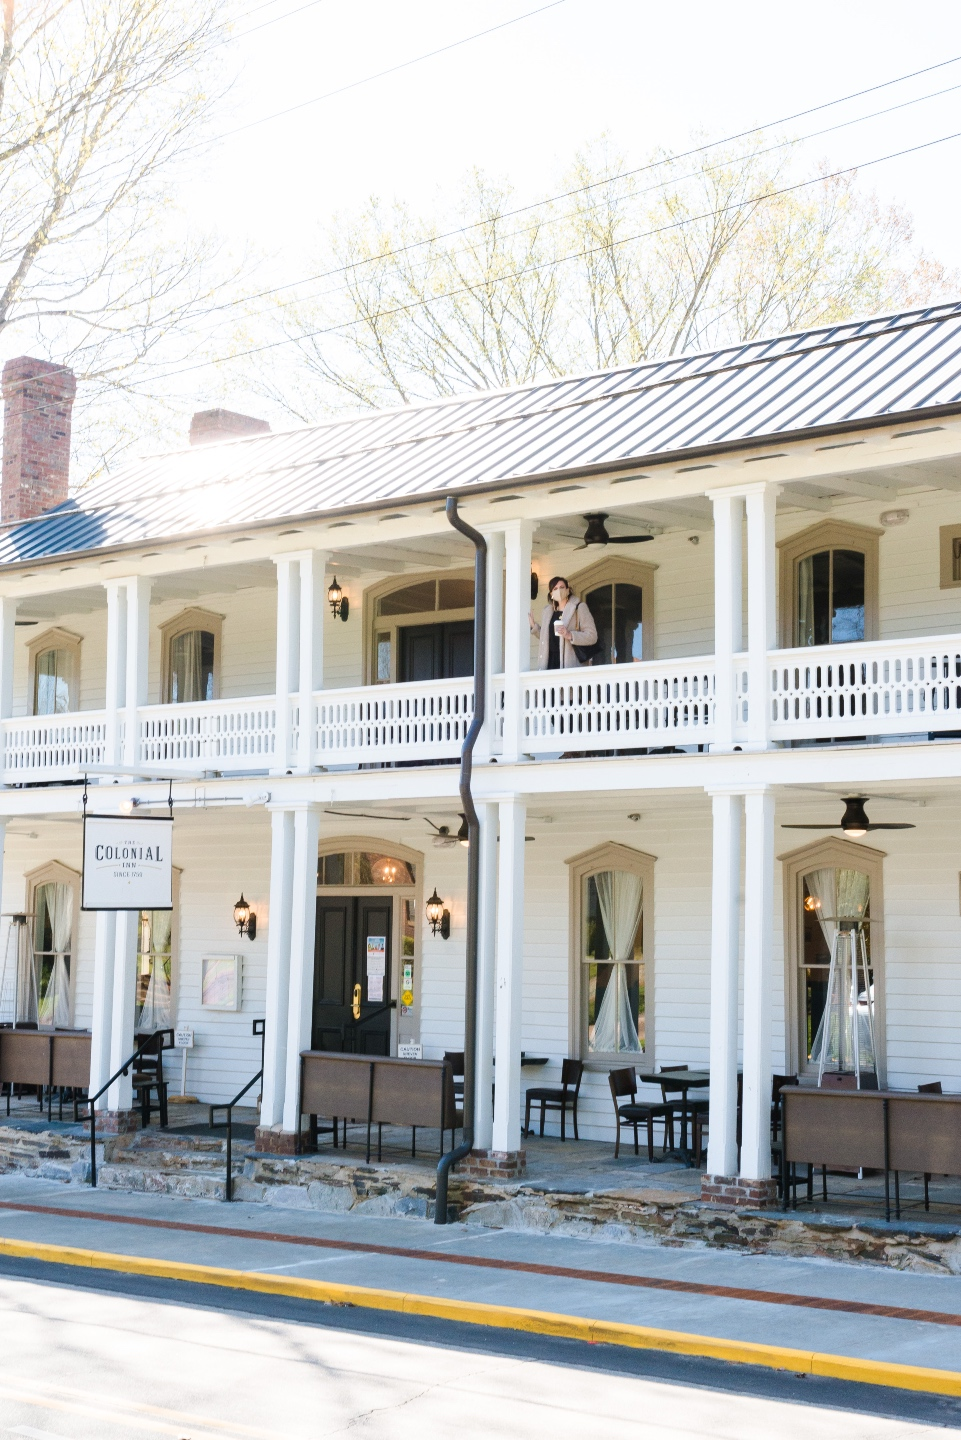 Places to Stay: The Colonial Inn in Hillsborough NC - I'm Fixin' To - @imfixintoblog |The Colonial Inn Hillsborough NC by popular NC travel blog, I'm Fixin' To: image of a woman standing outside at the The Colonia Inn in Hillsborough NC.